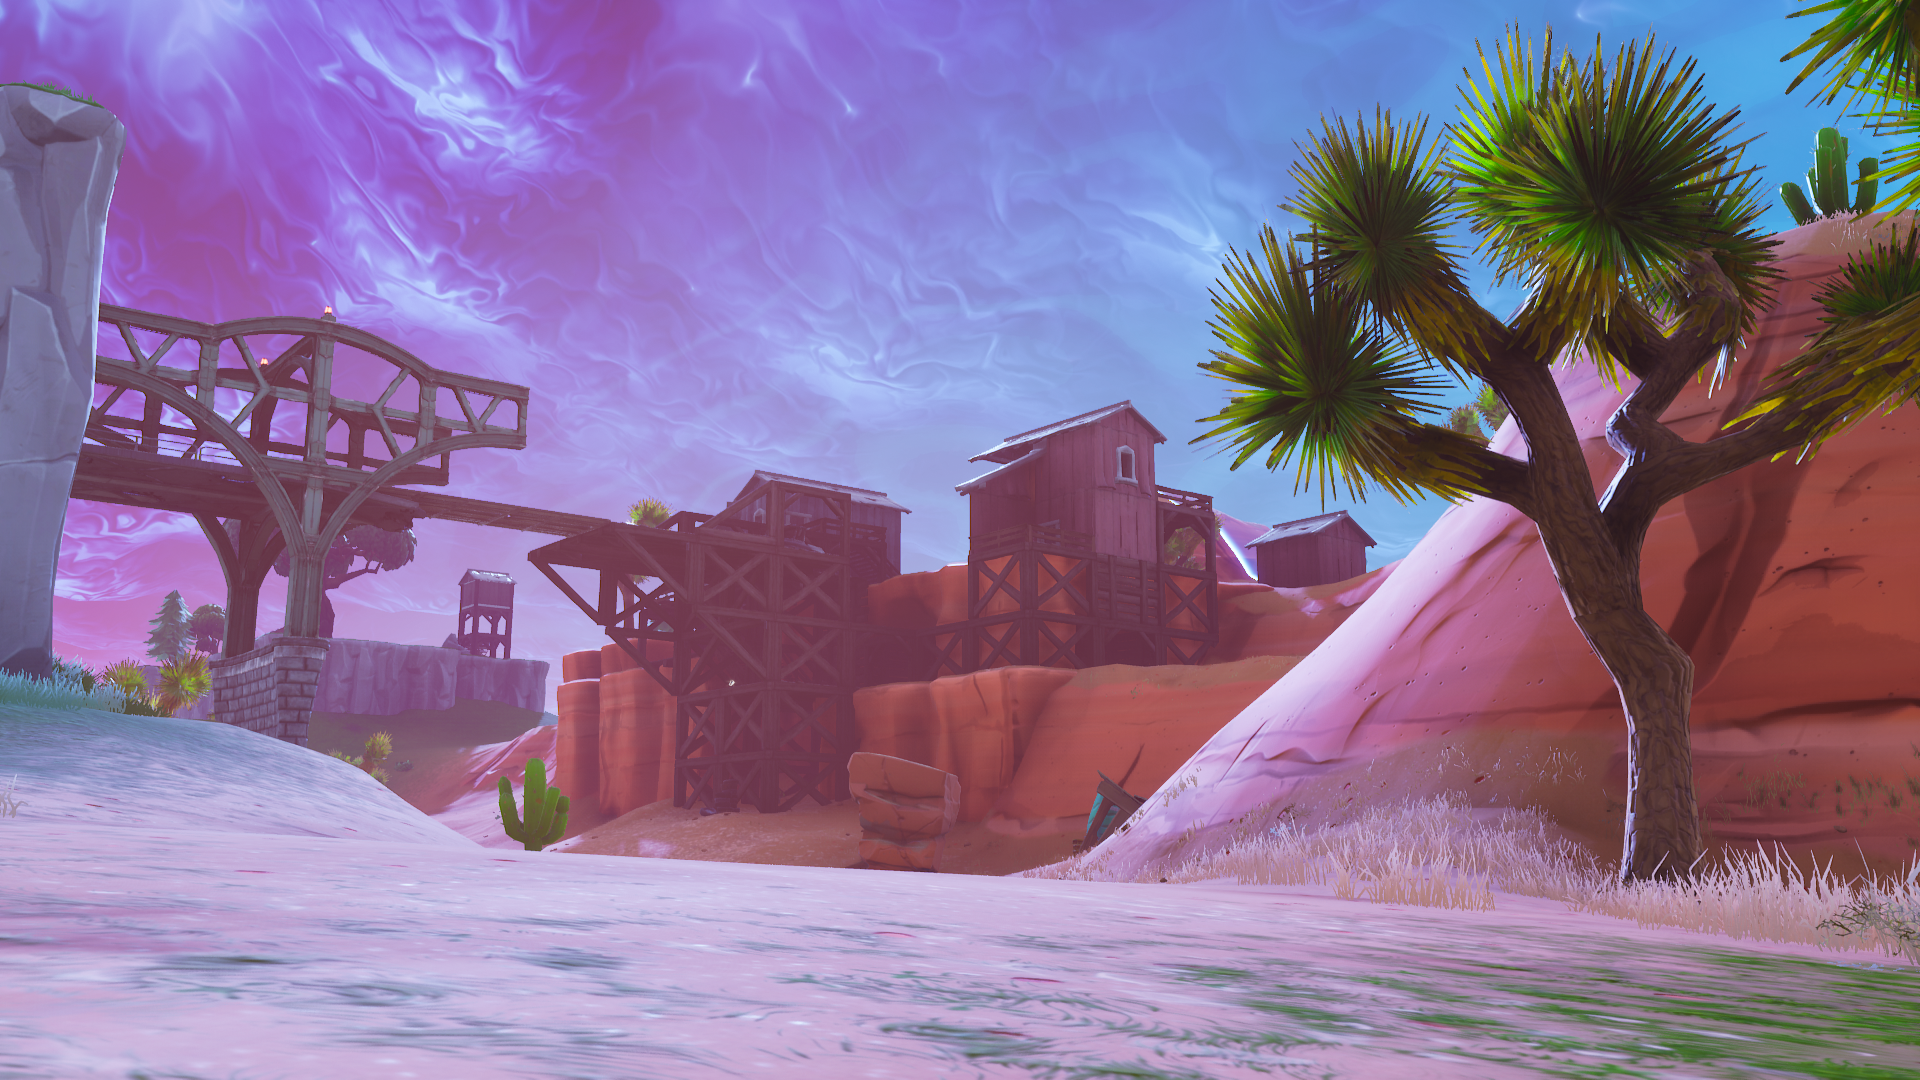 Pin By Nialloriordan On Fortnite Background Best Gaming Wallpapers Photo